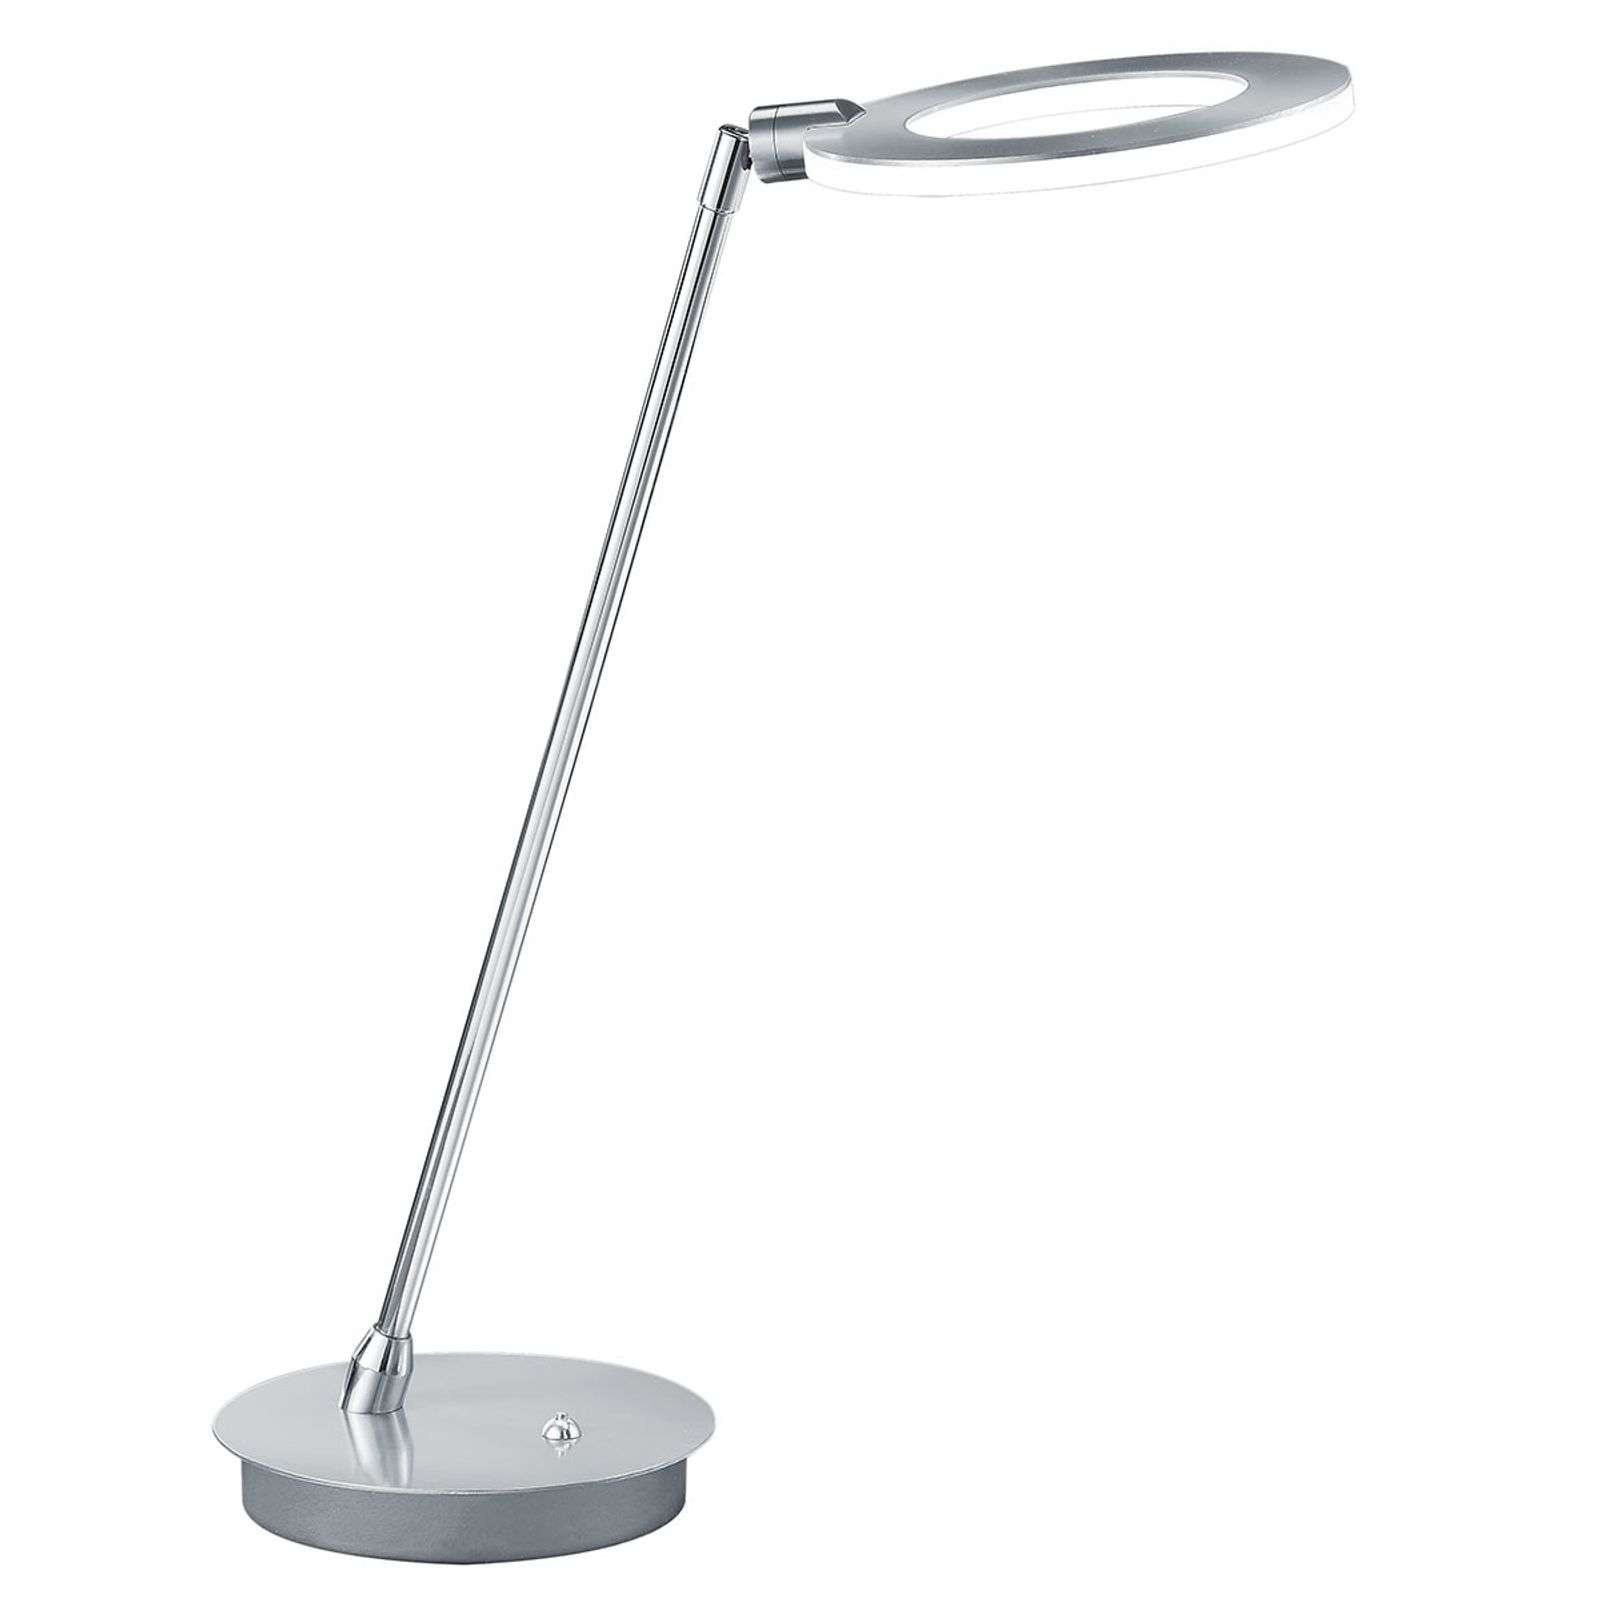 Lampe à poser LED Mica flexible, dimmable